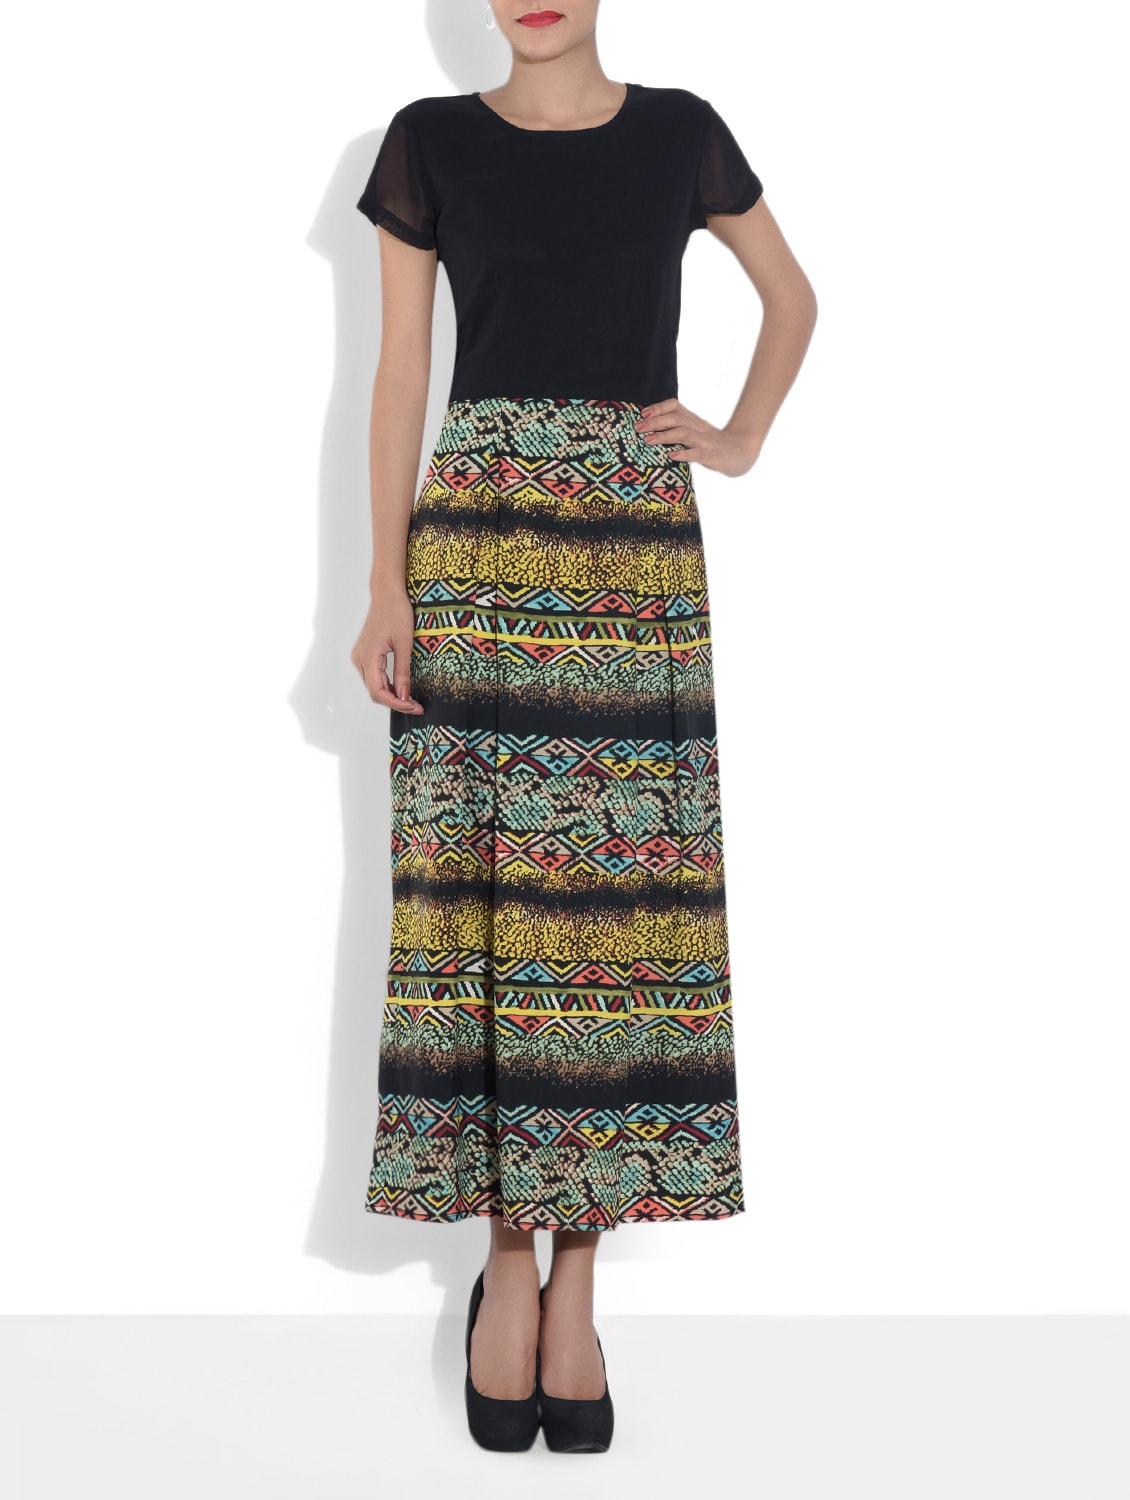 Black Printed Poly Crepe Maxi Dress - By